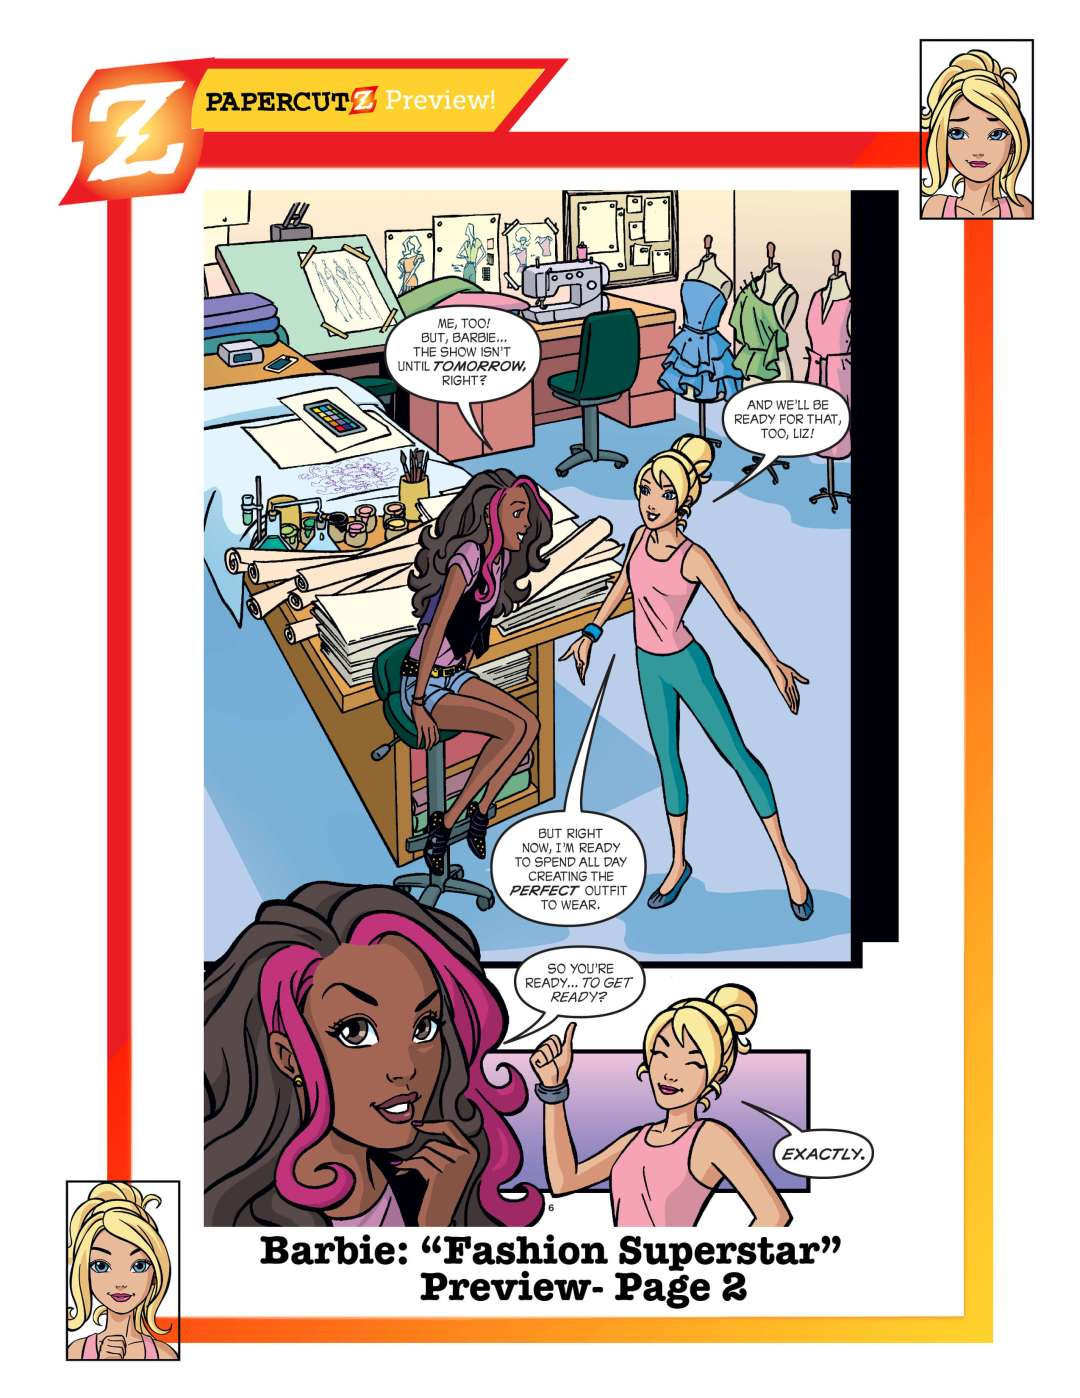 barbie_preview_page2